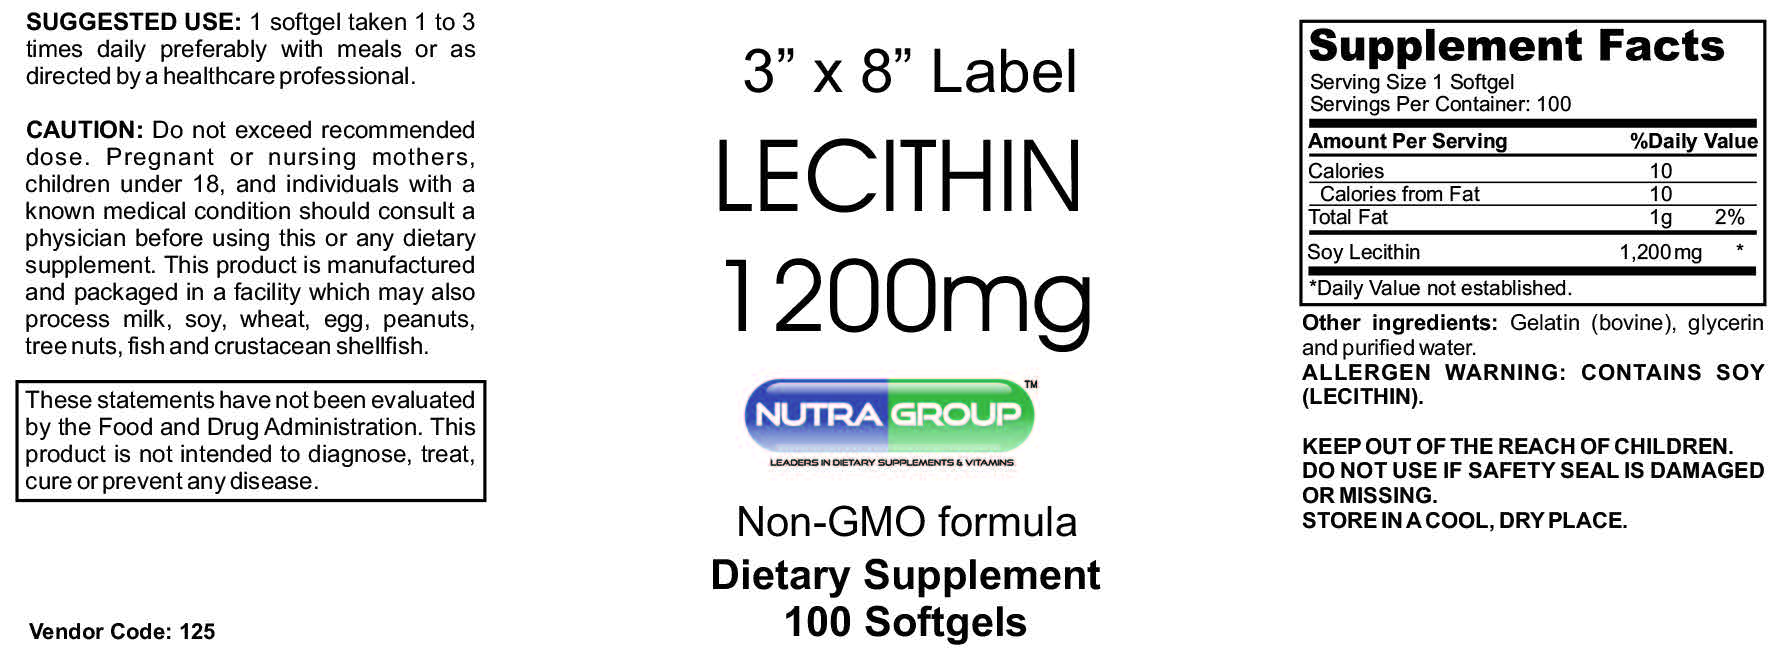 Private label lecithin supplement